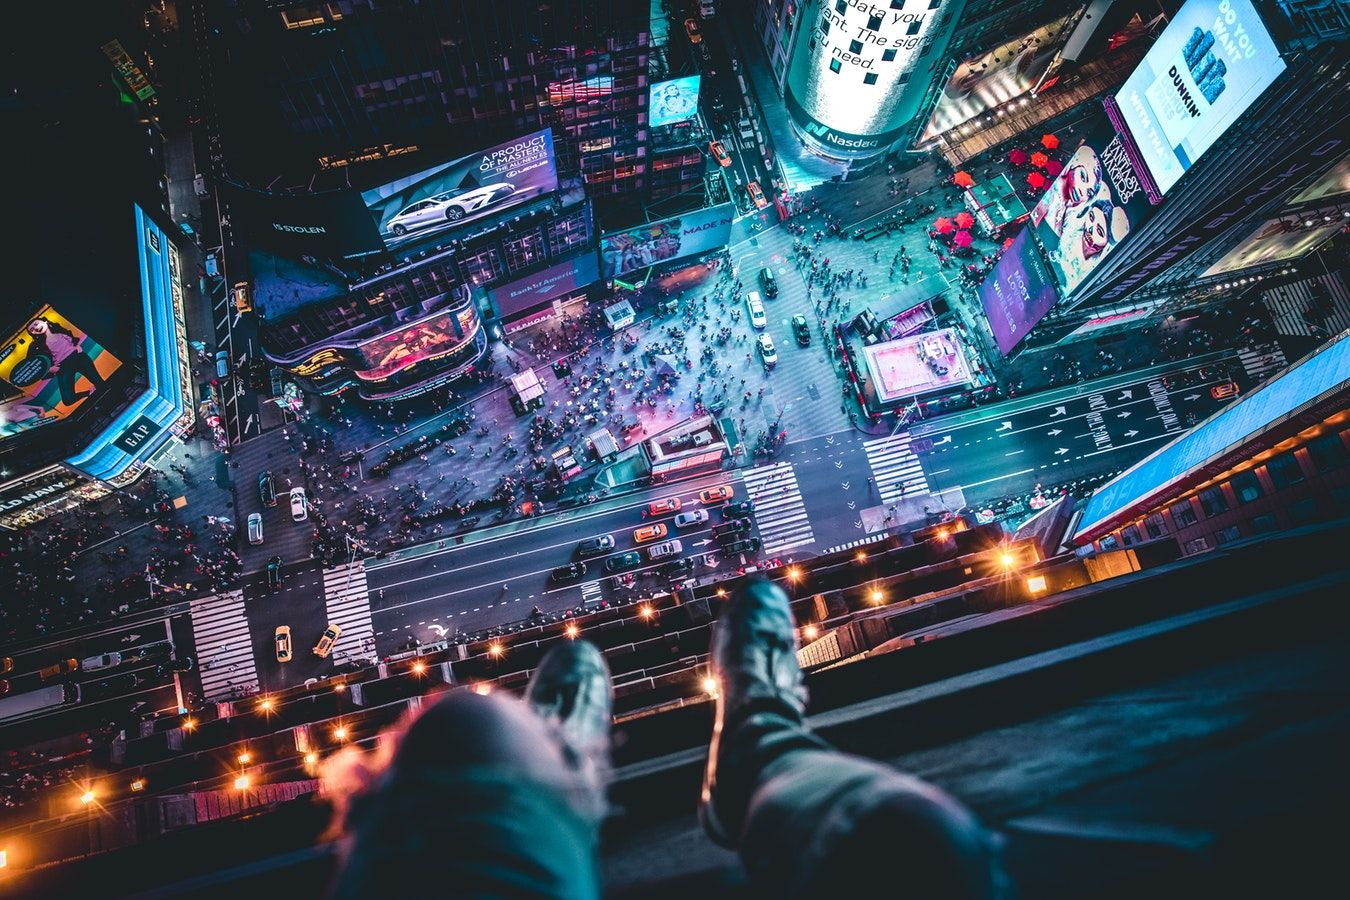 Hangin Above Time Square Photo By Andre Benz Trapnation On